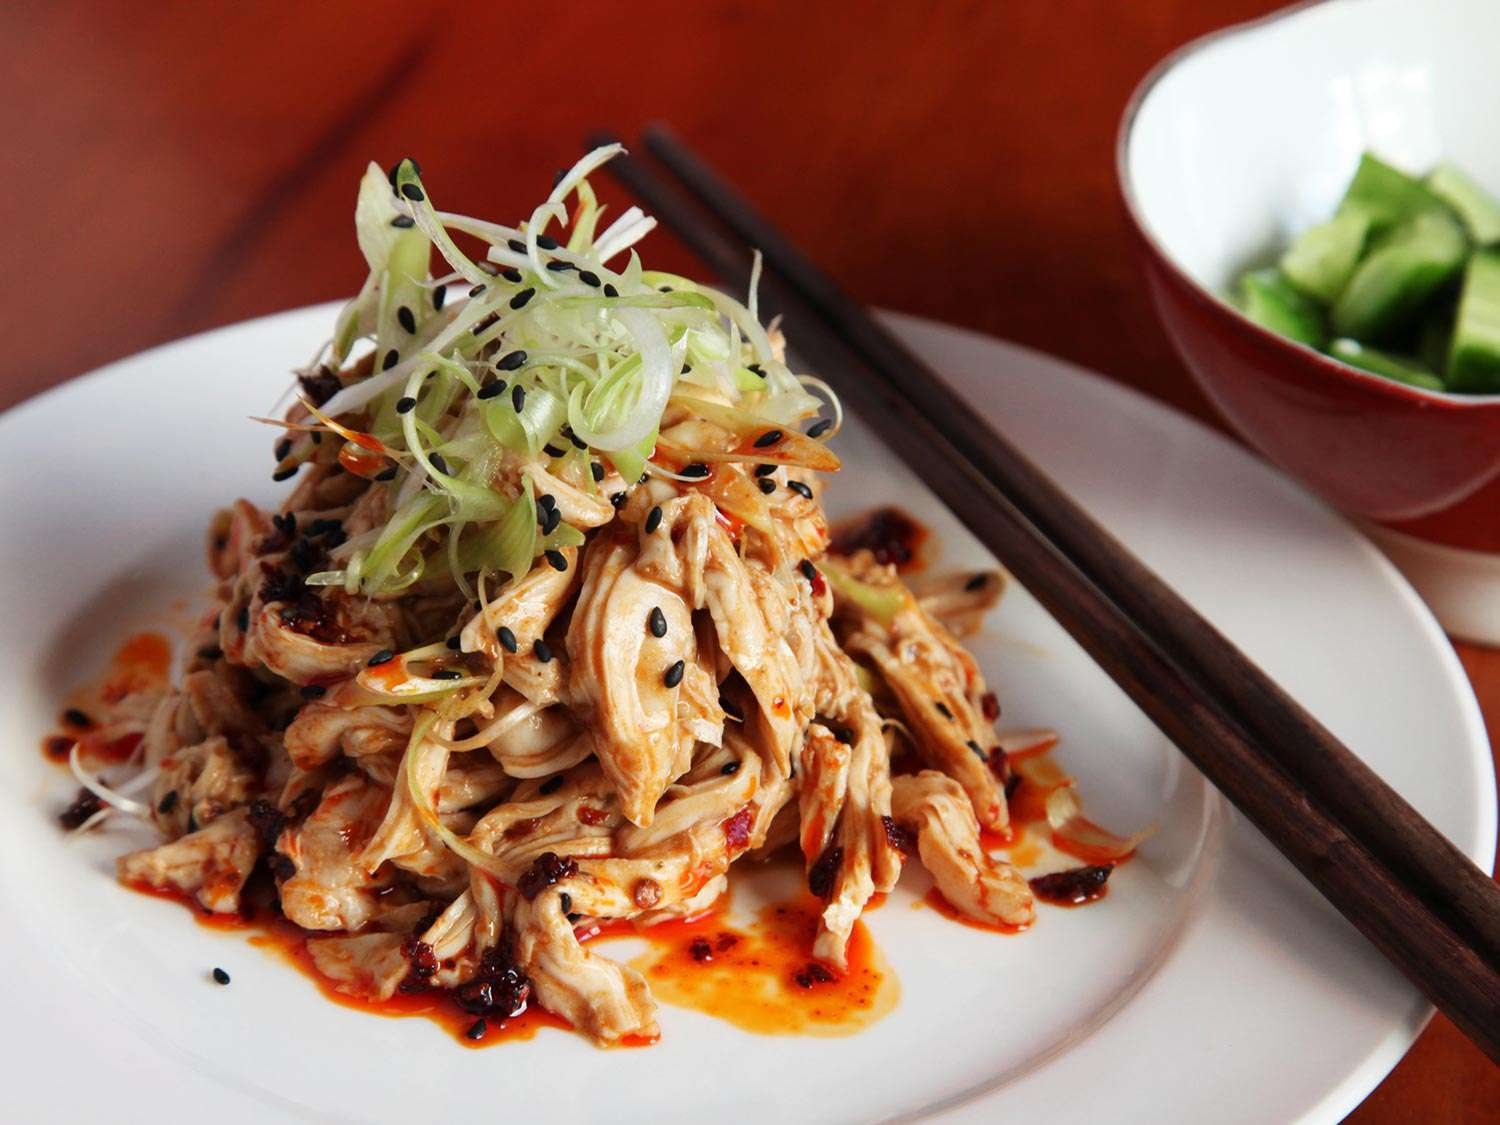 A plate of Sichuan shredded chicken salad topped with sliced scallions and black sesame seeds